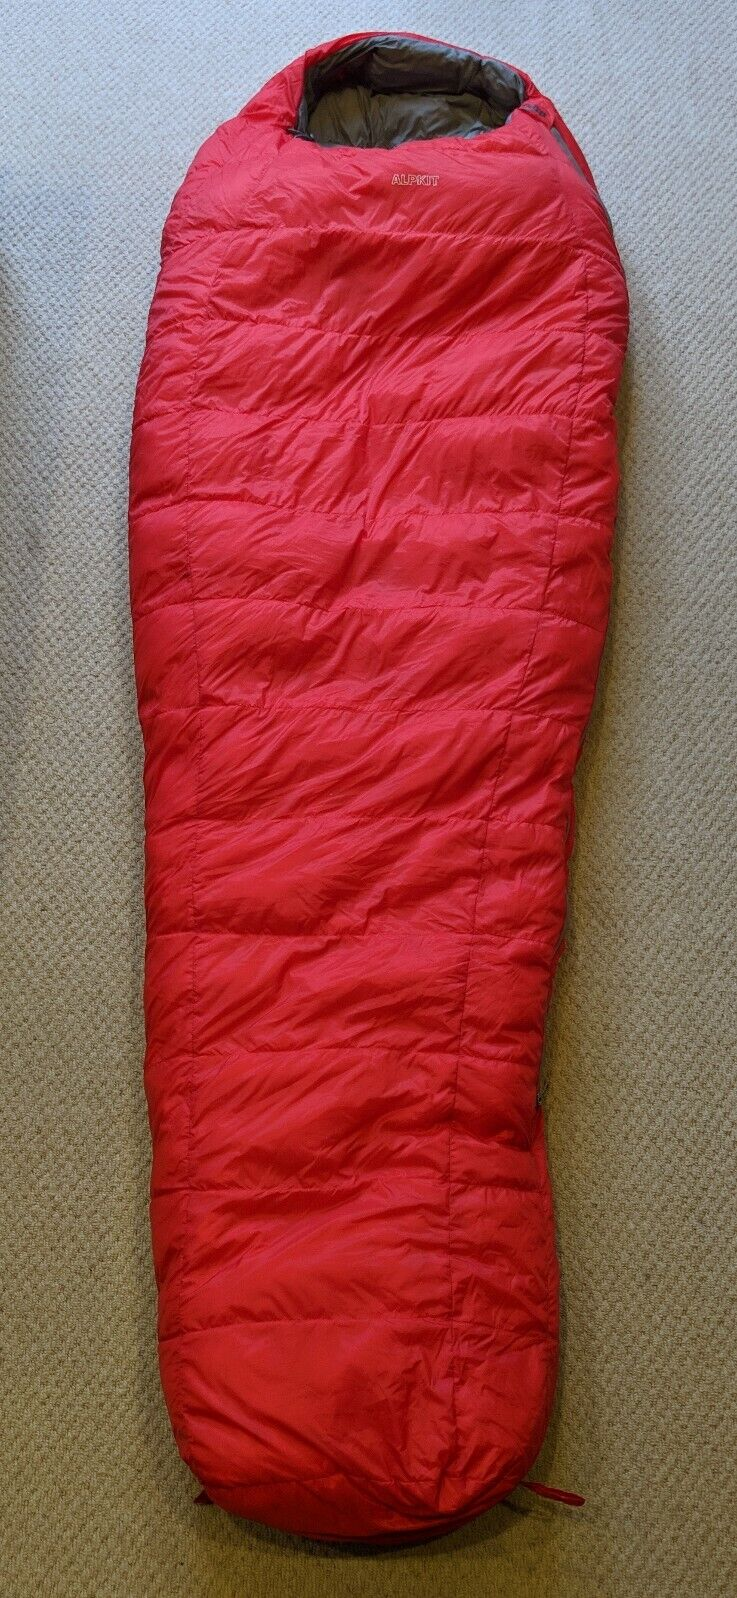 Alpkit Skyehigh 900 down Sleeping Bag